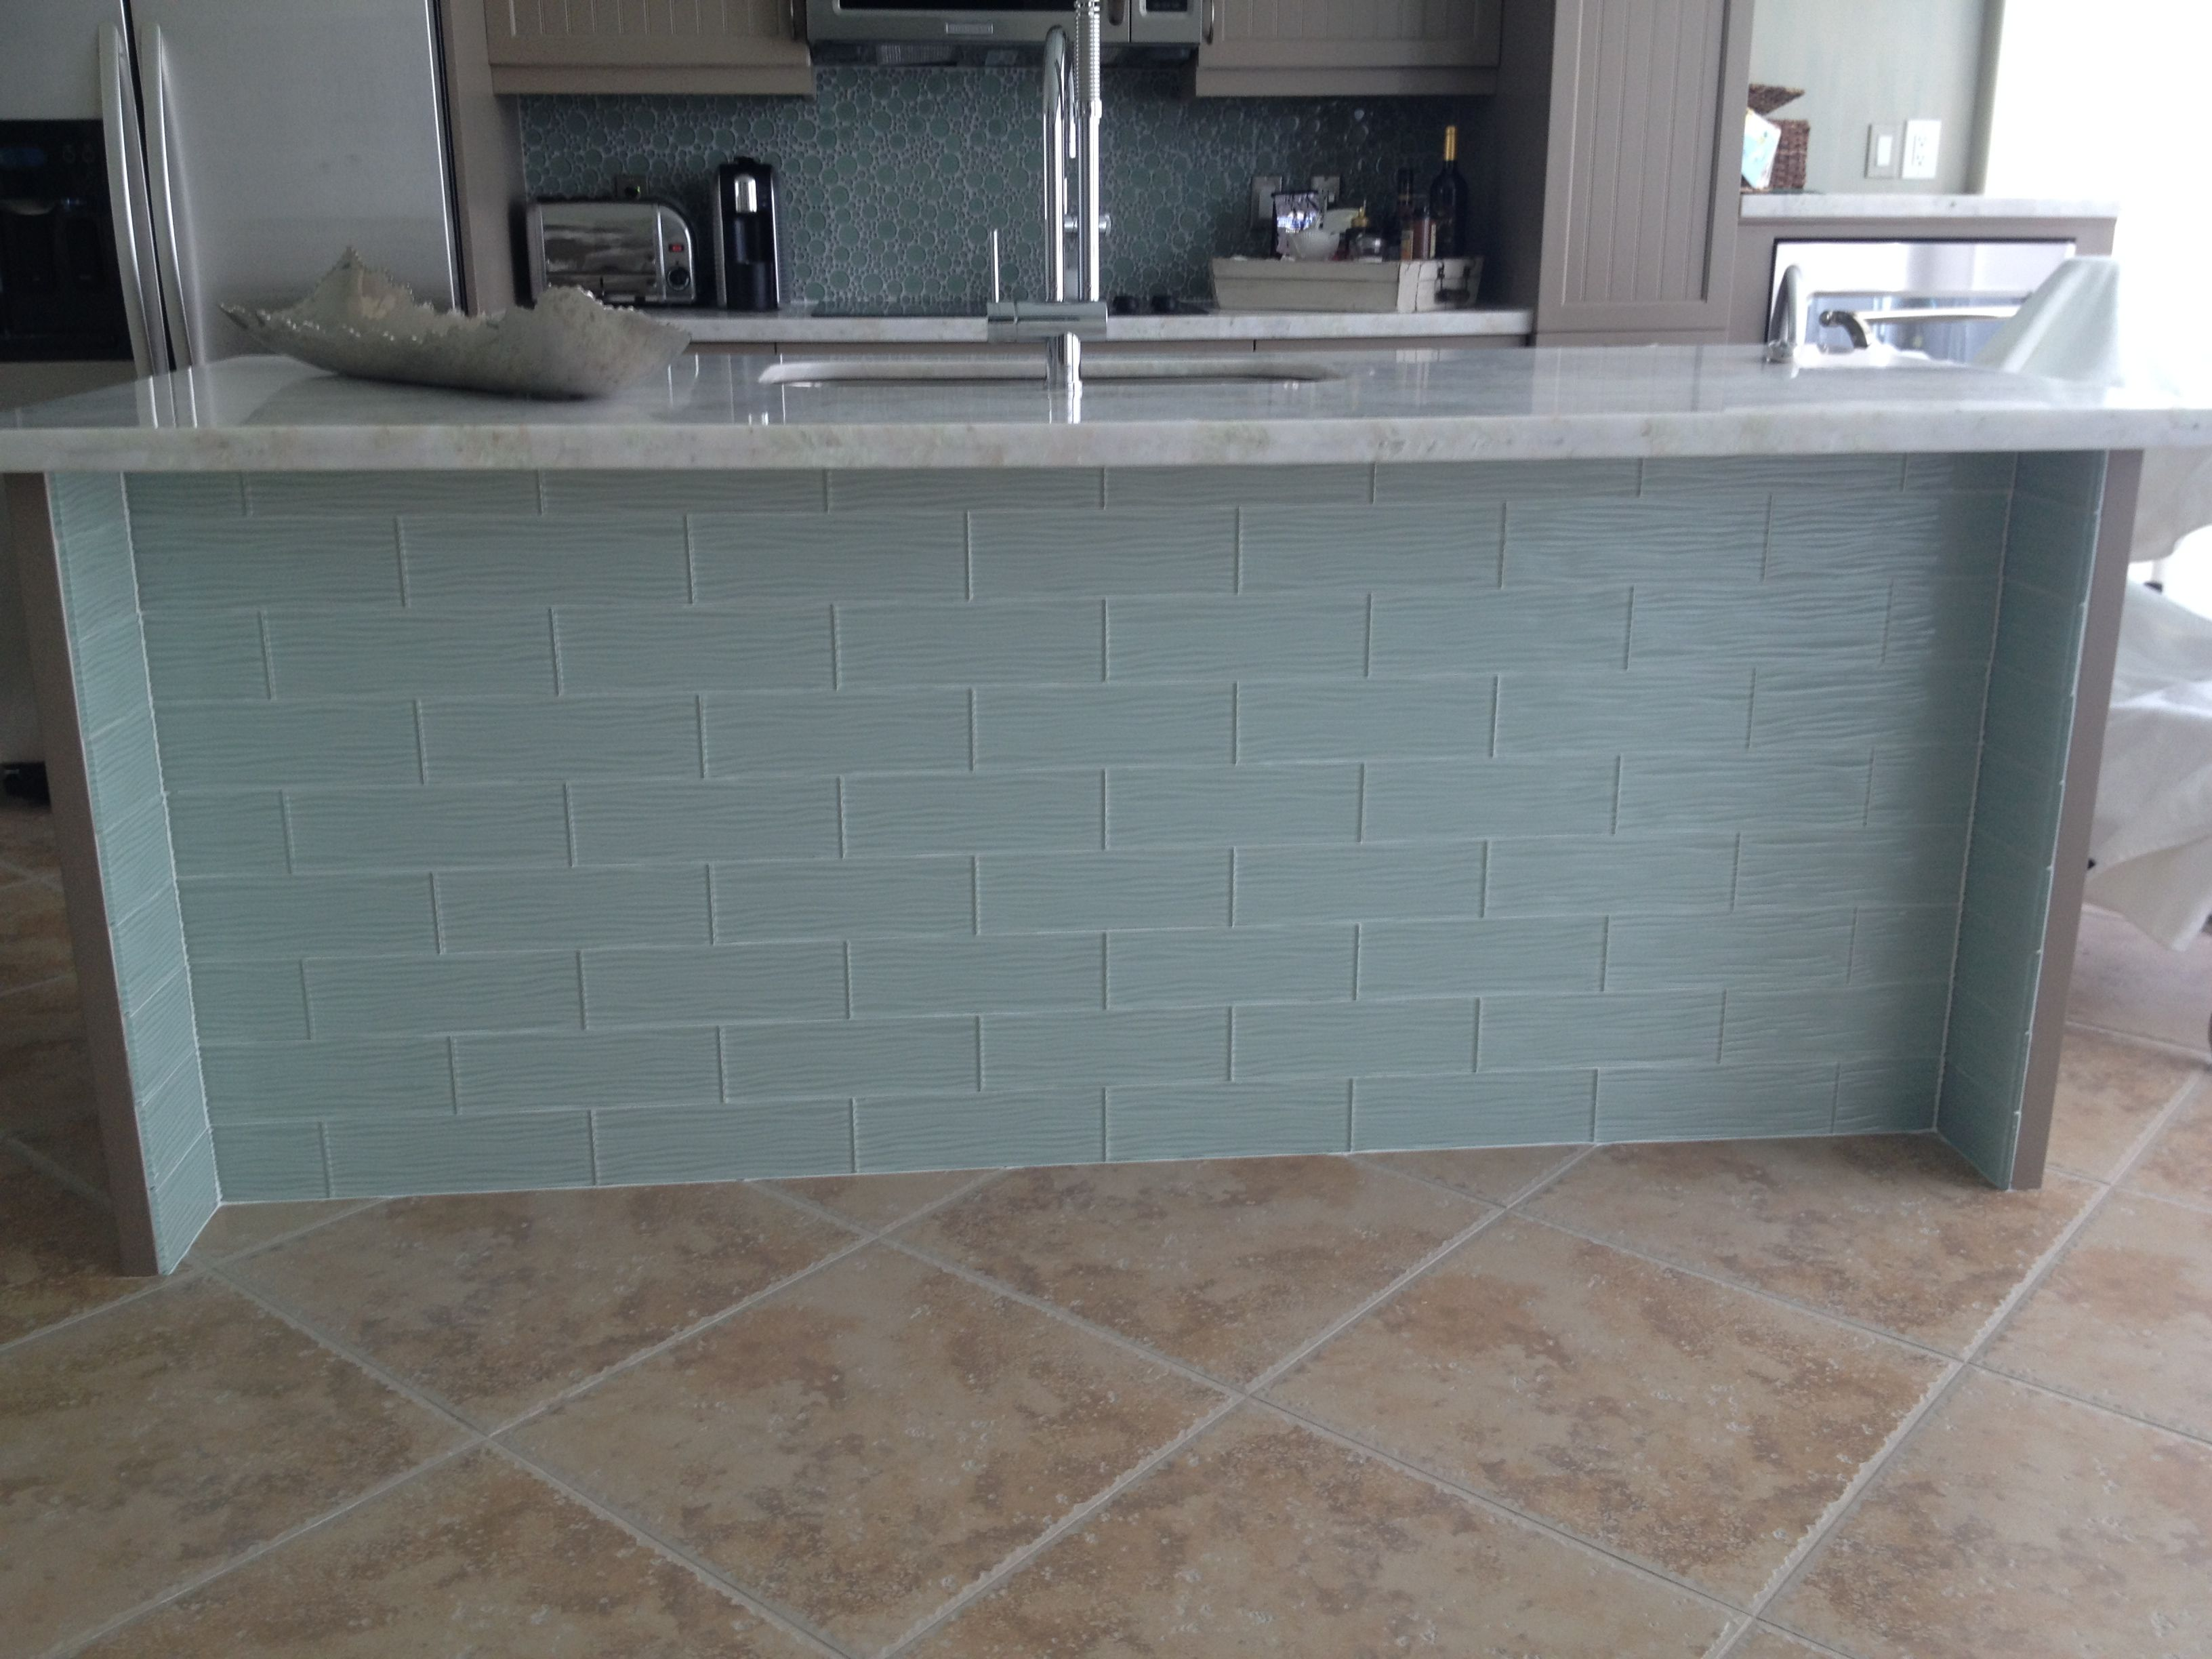 Onyx Kitchen Backsplash Ceramic Canister Sets Beachy With Lady Countertops And Glass Tile